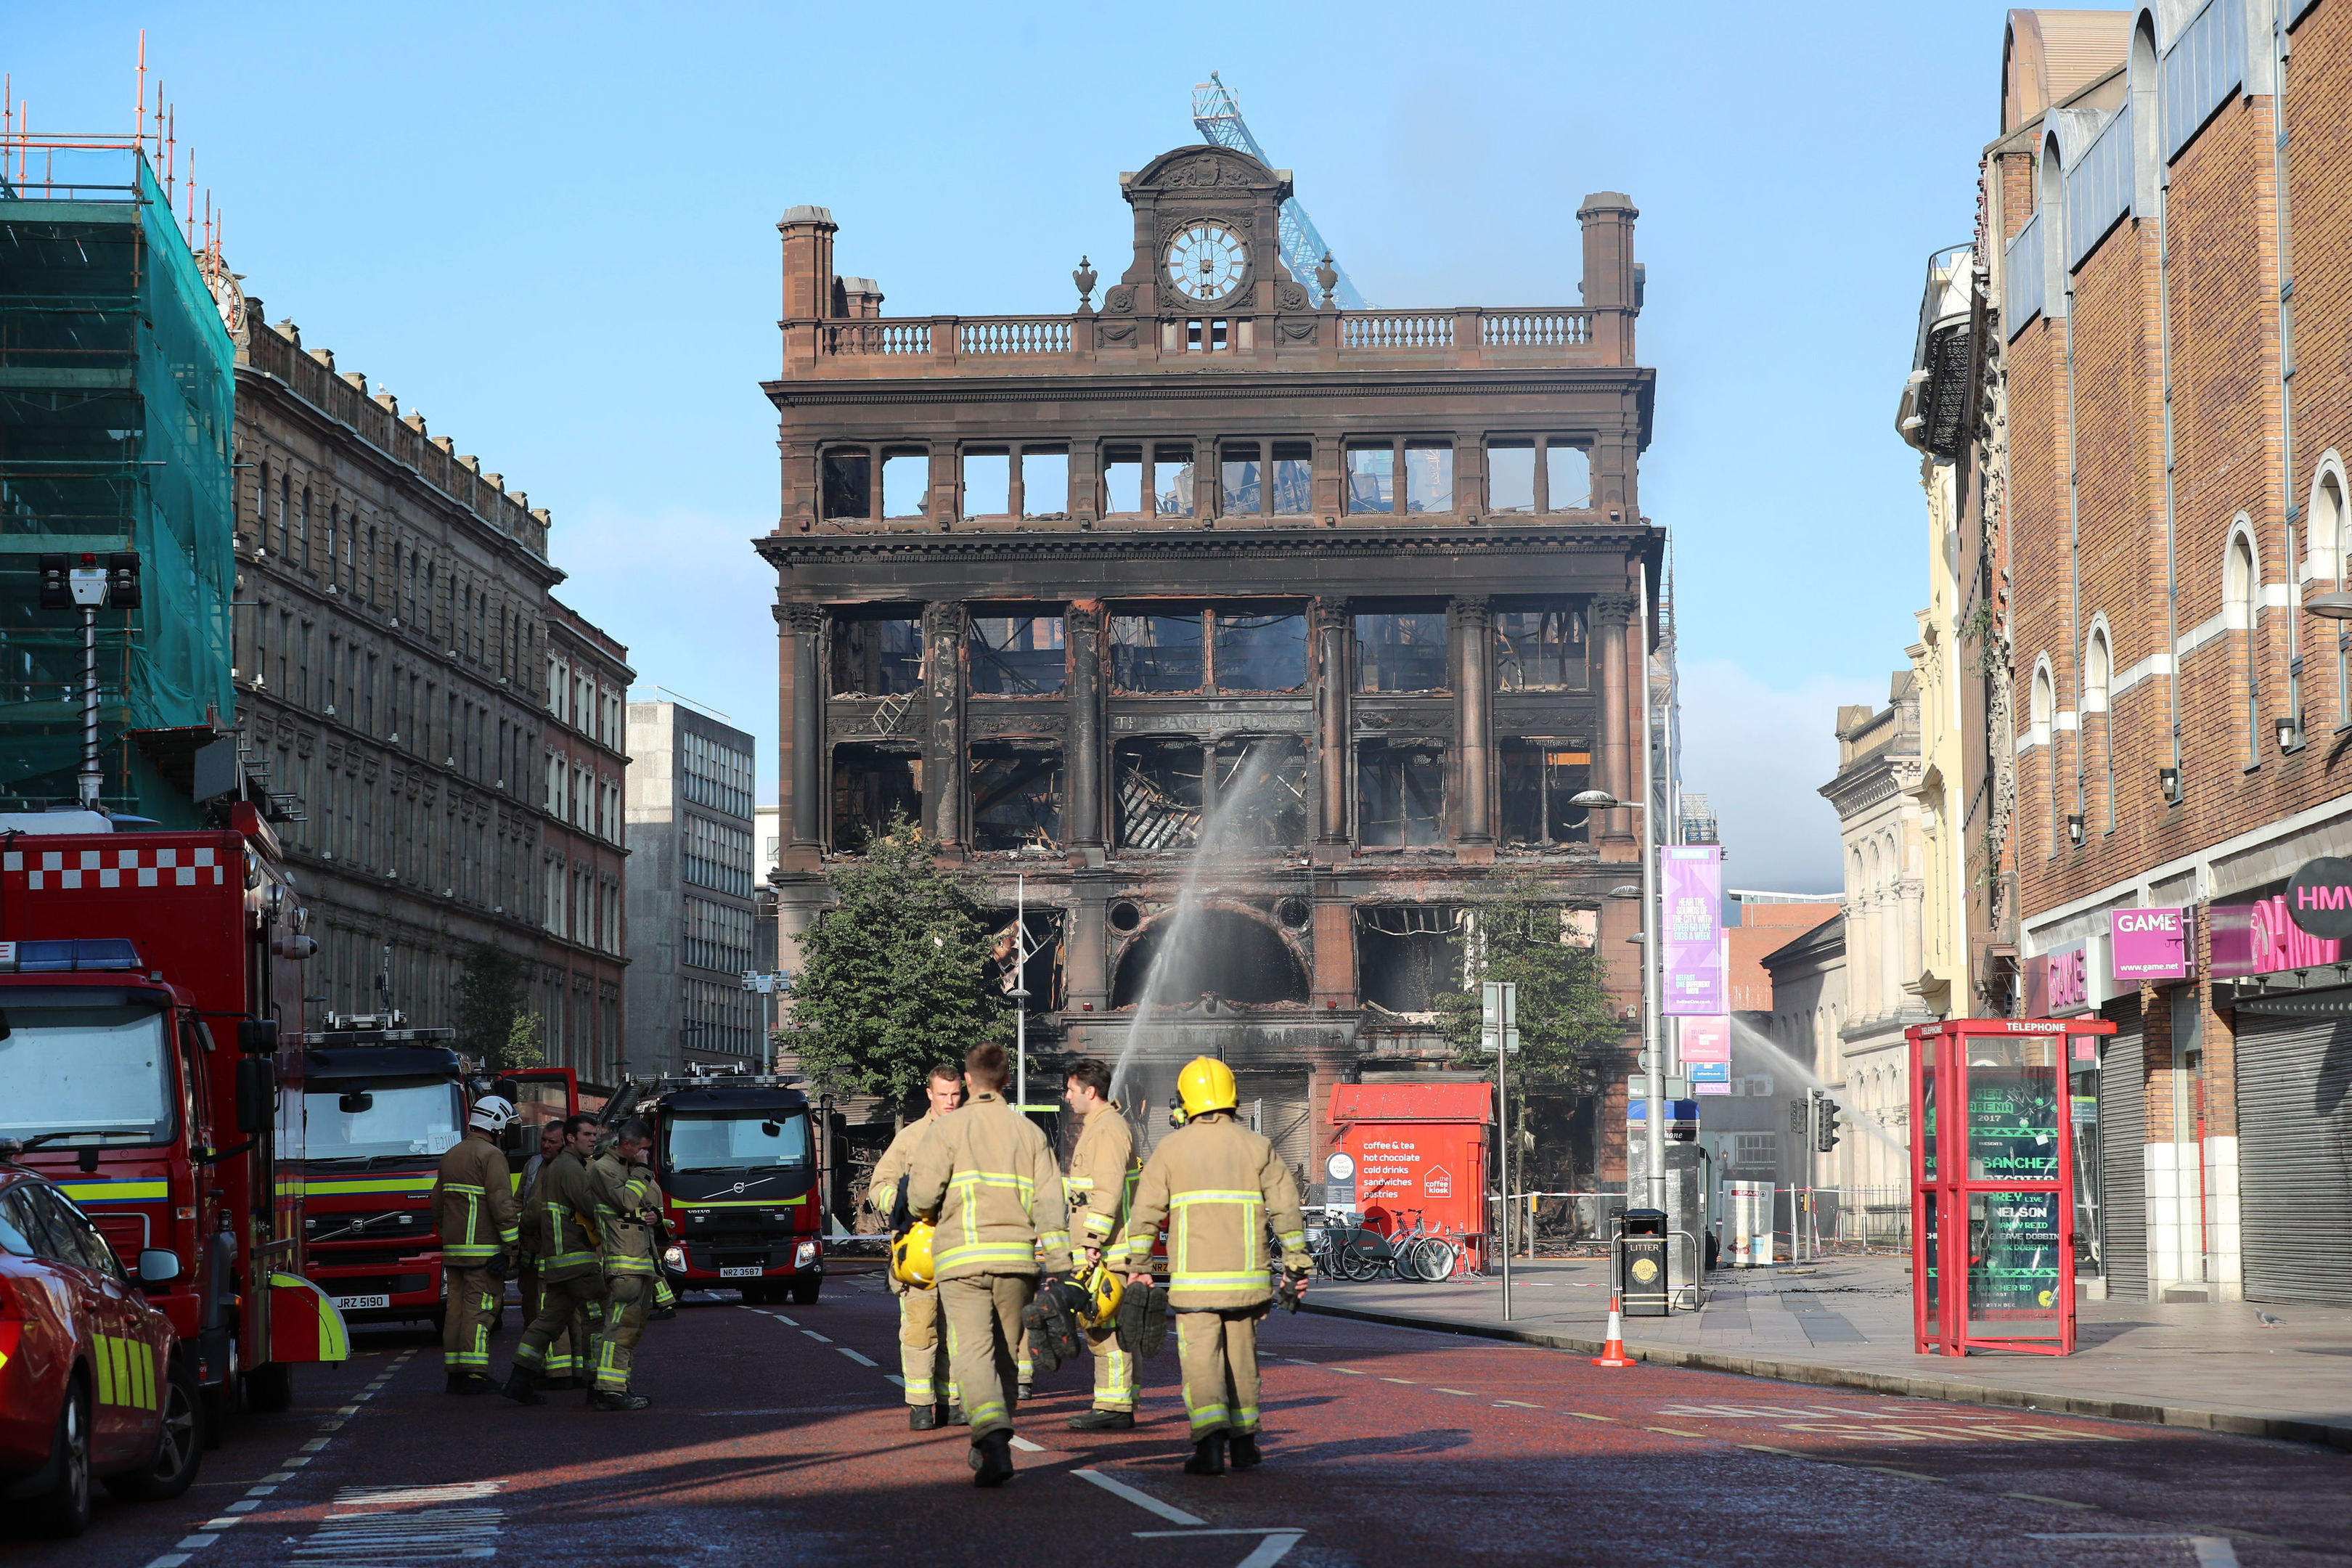 The fire damaged shell of the Primark store in Belfast city centre this morning (Liam McBurney/PA Wire)